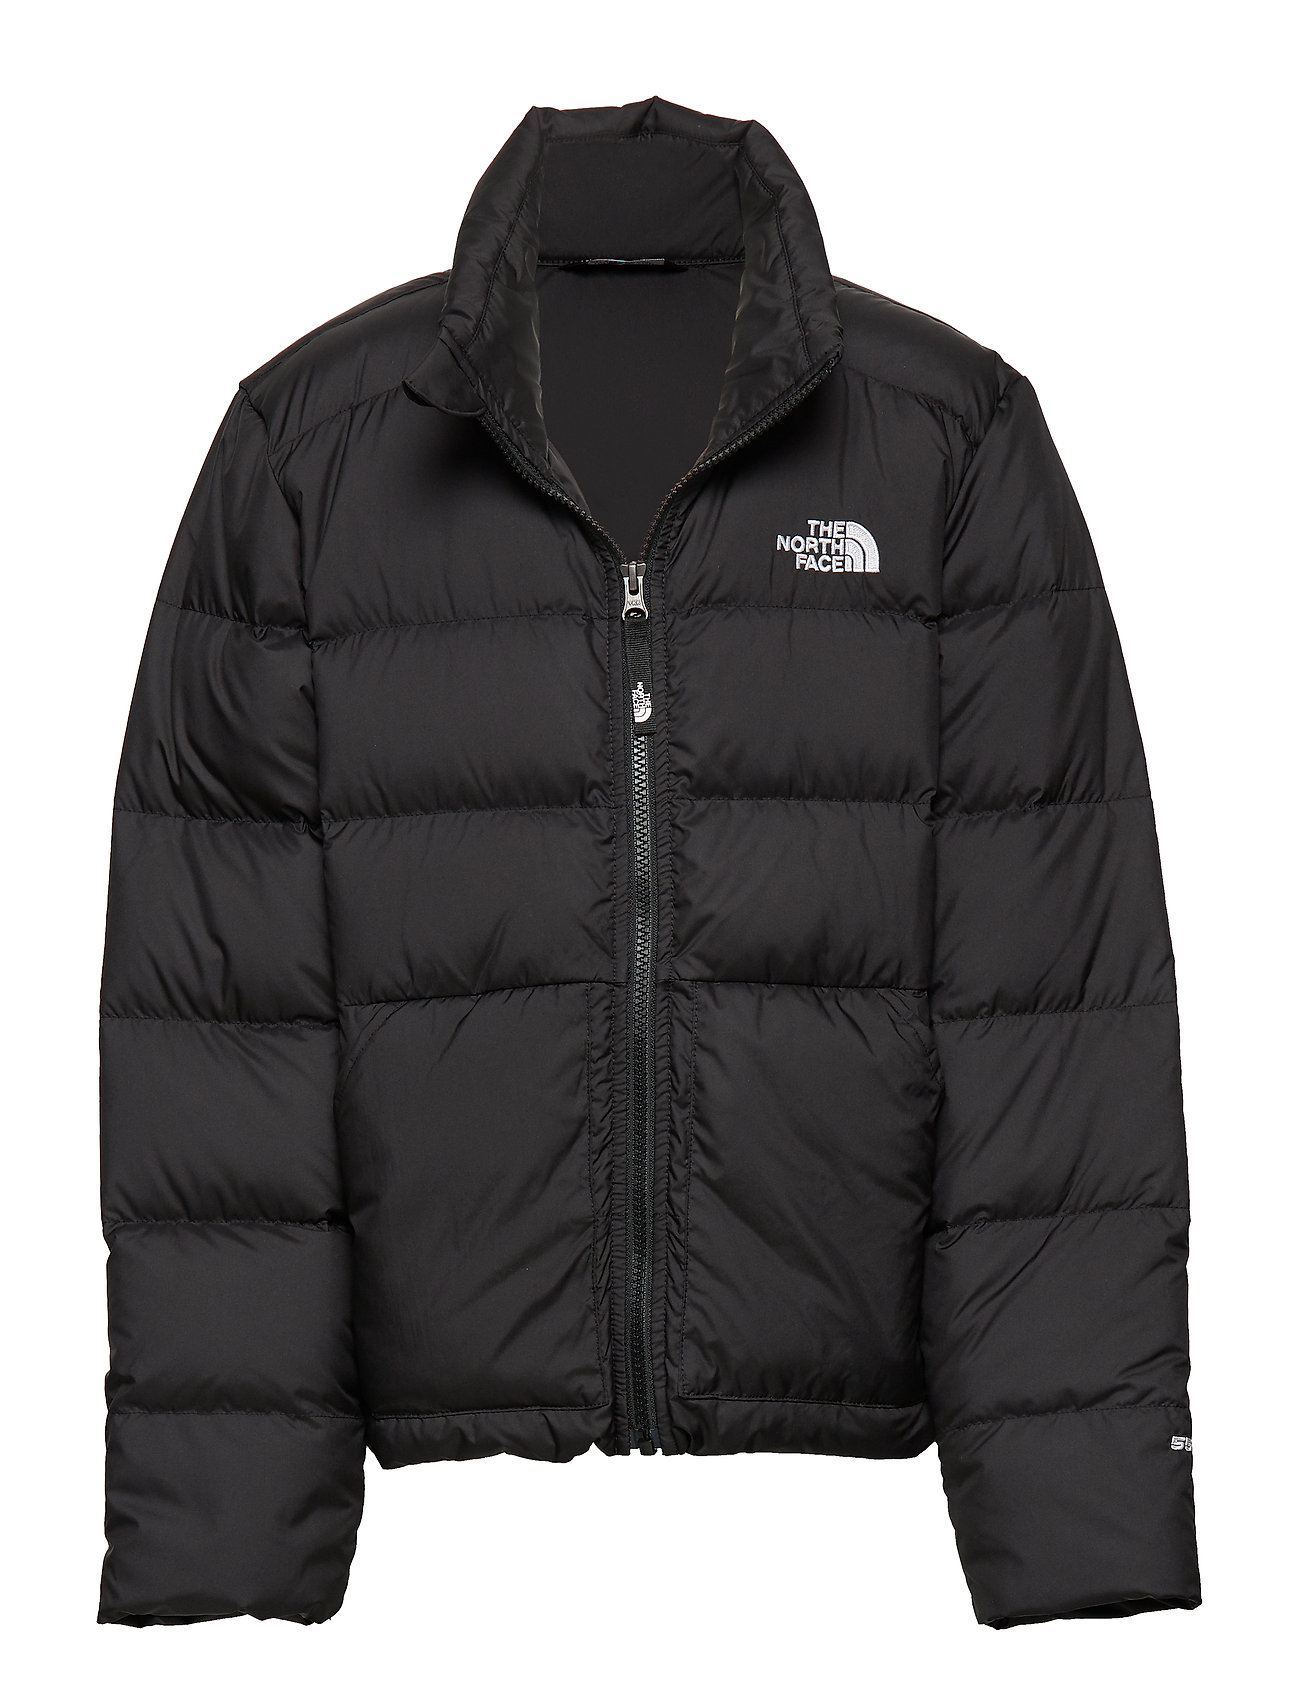 The North Face G ANDES DOWN JACKET - TNF BLACK